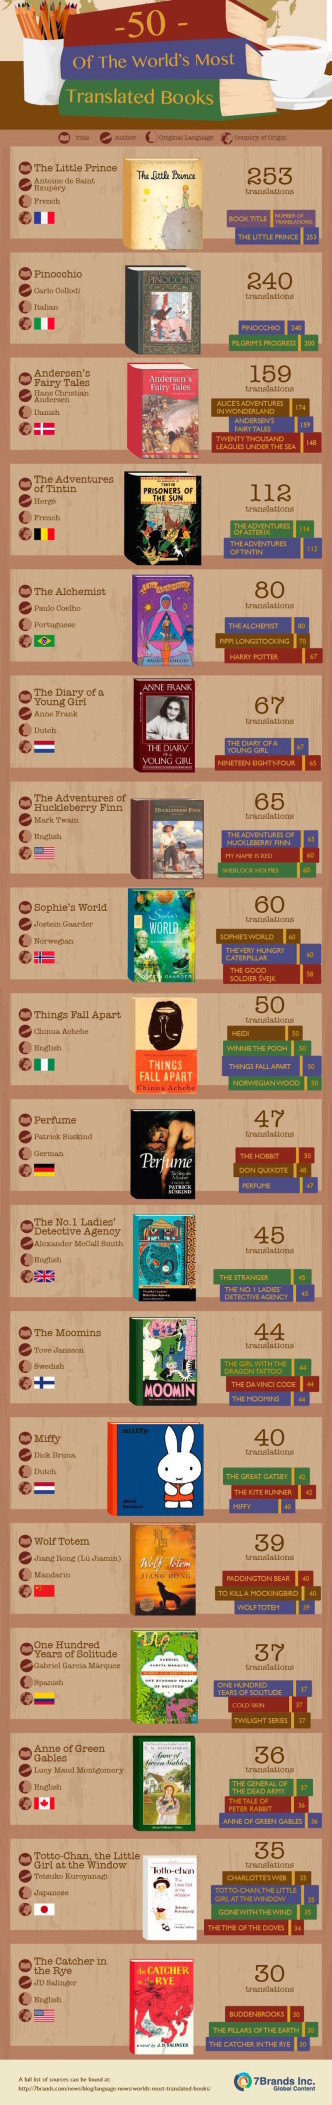 Most translated books in the world #infographic